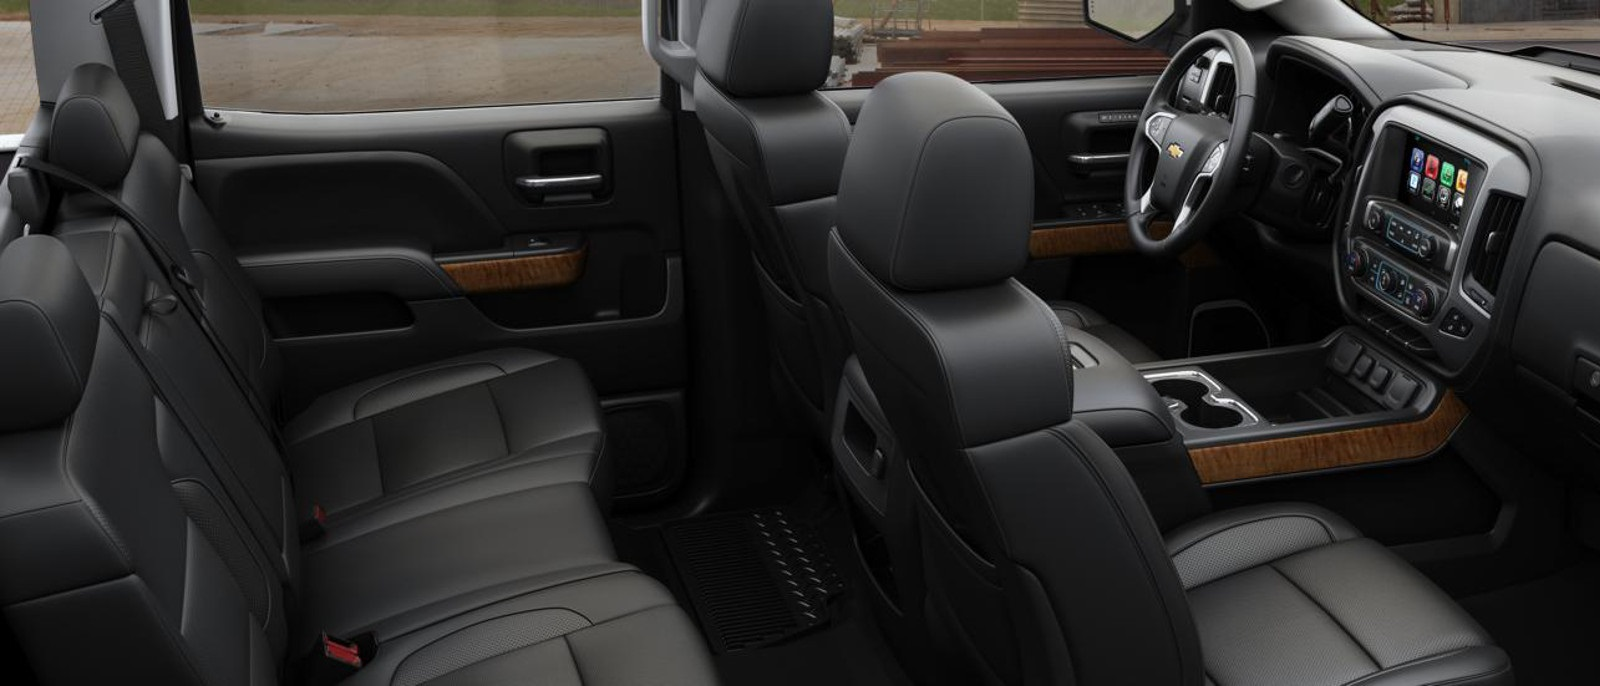 2016 Chevy Silverado 2500HD Interior